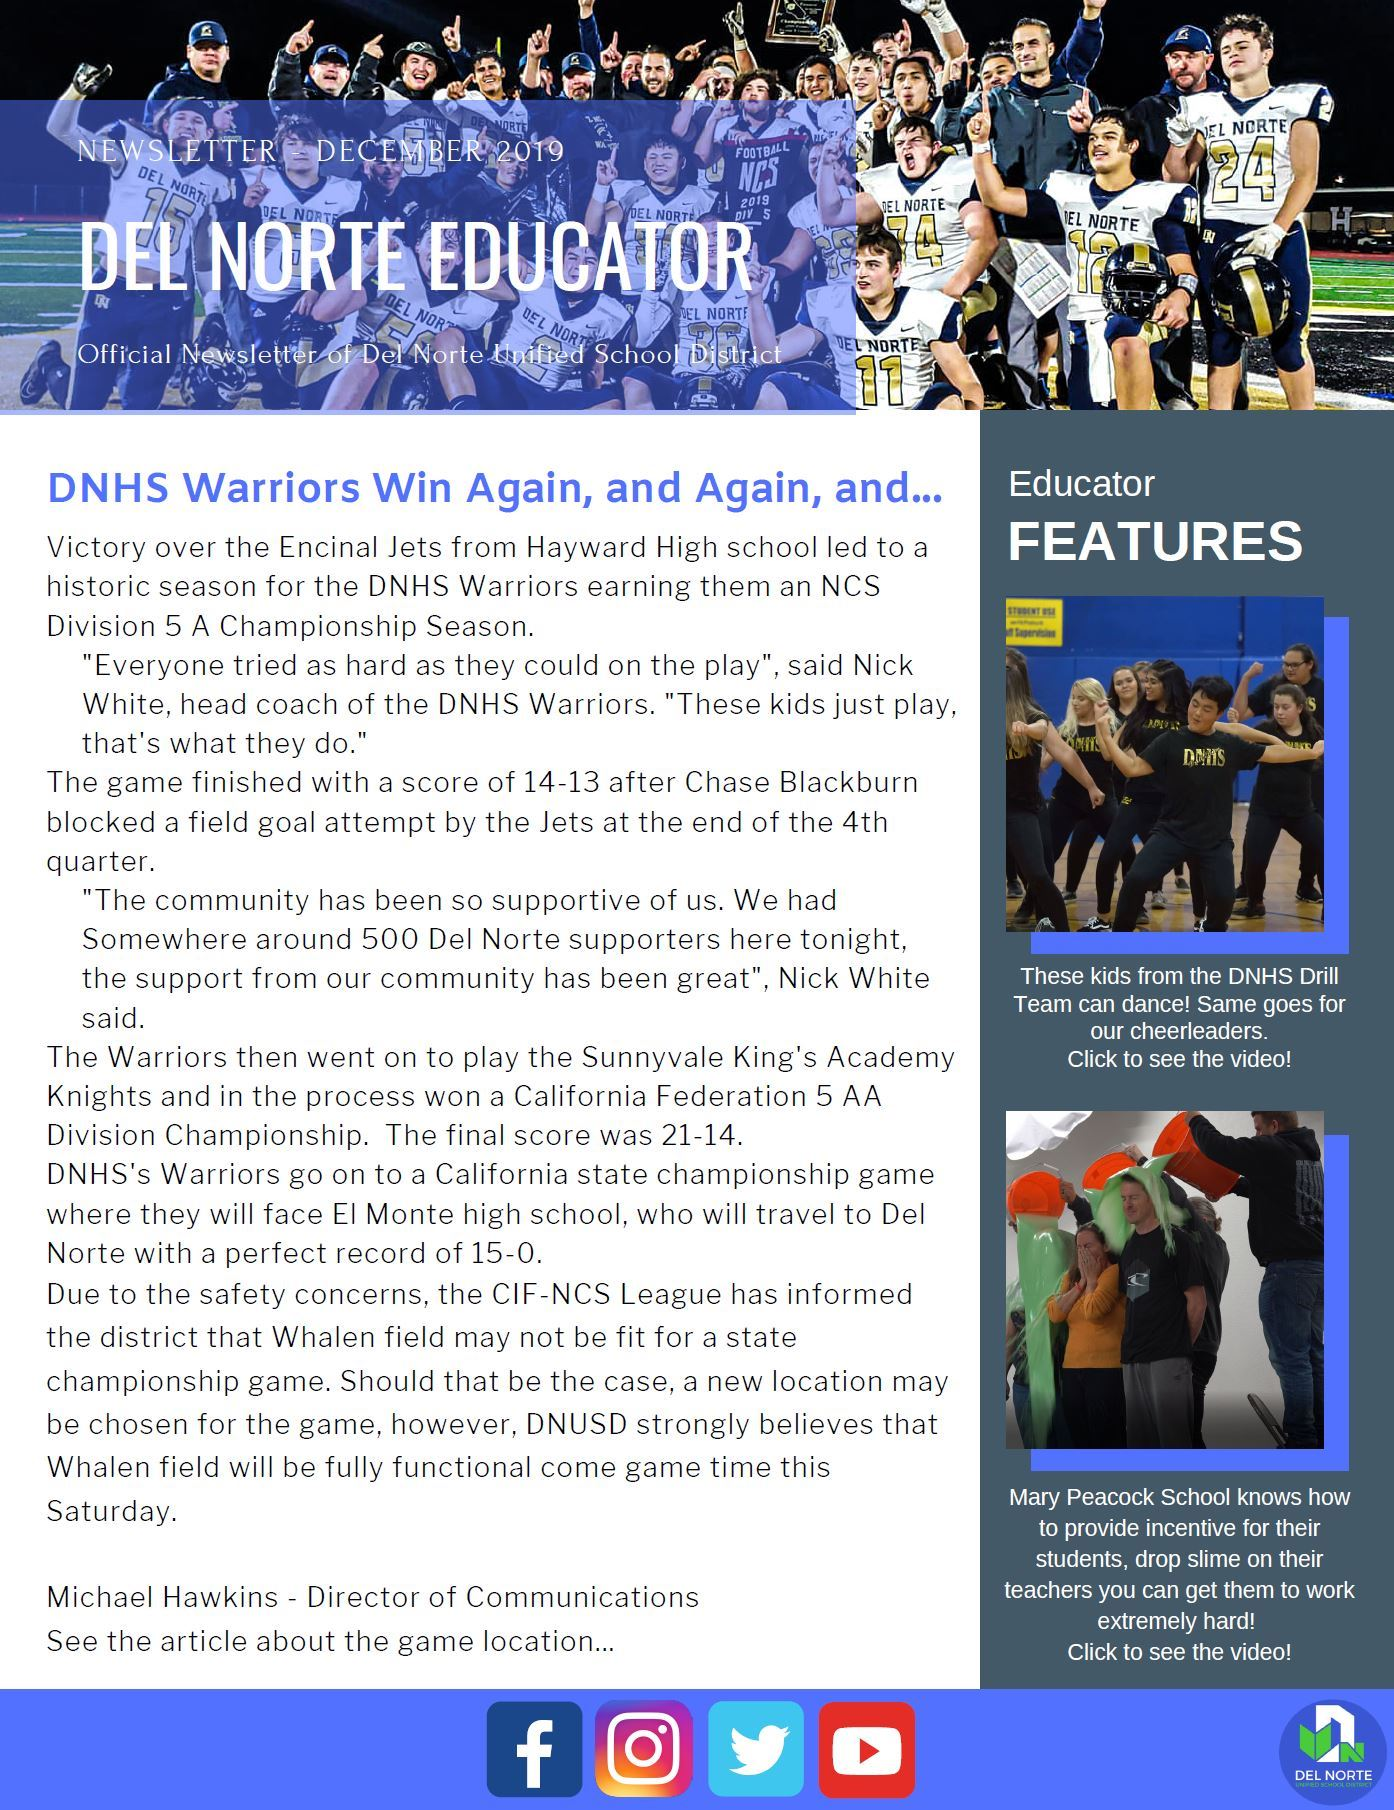 Del Norte Educator Newsletter - December 2019